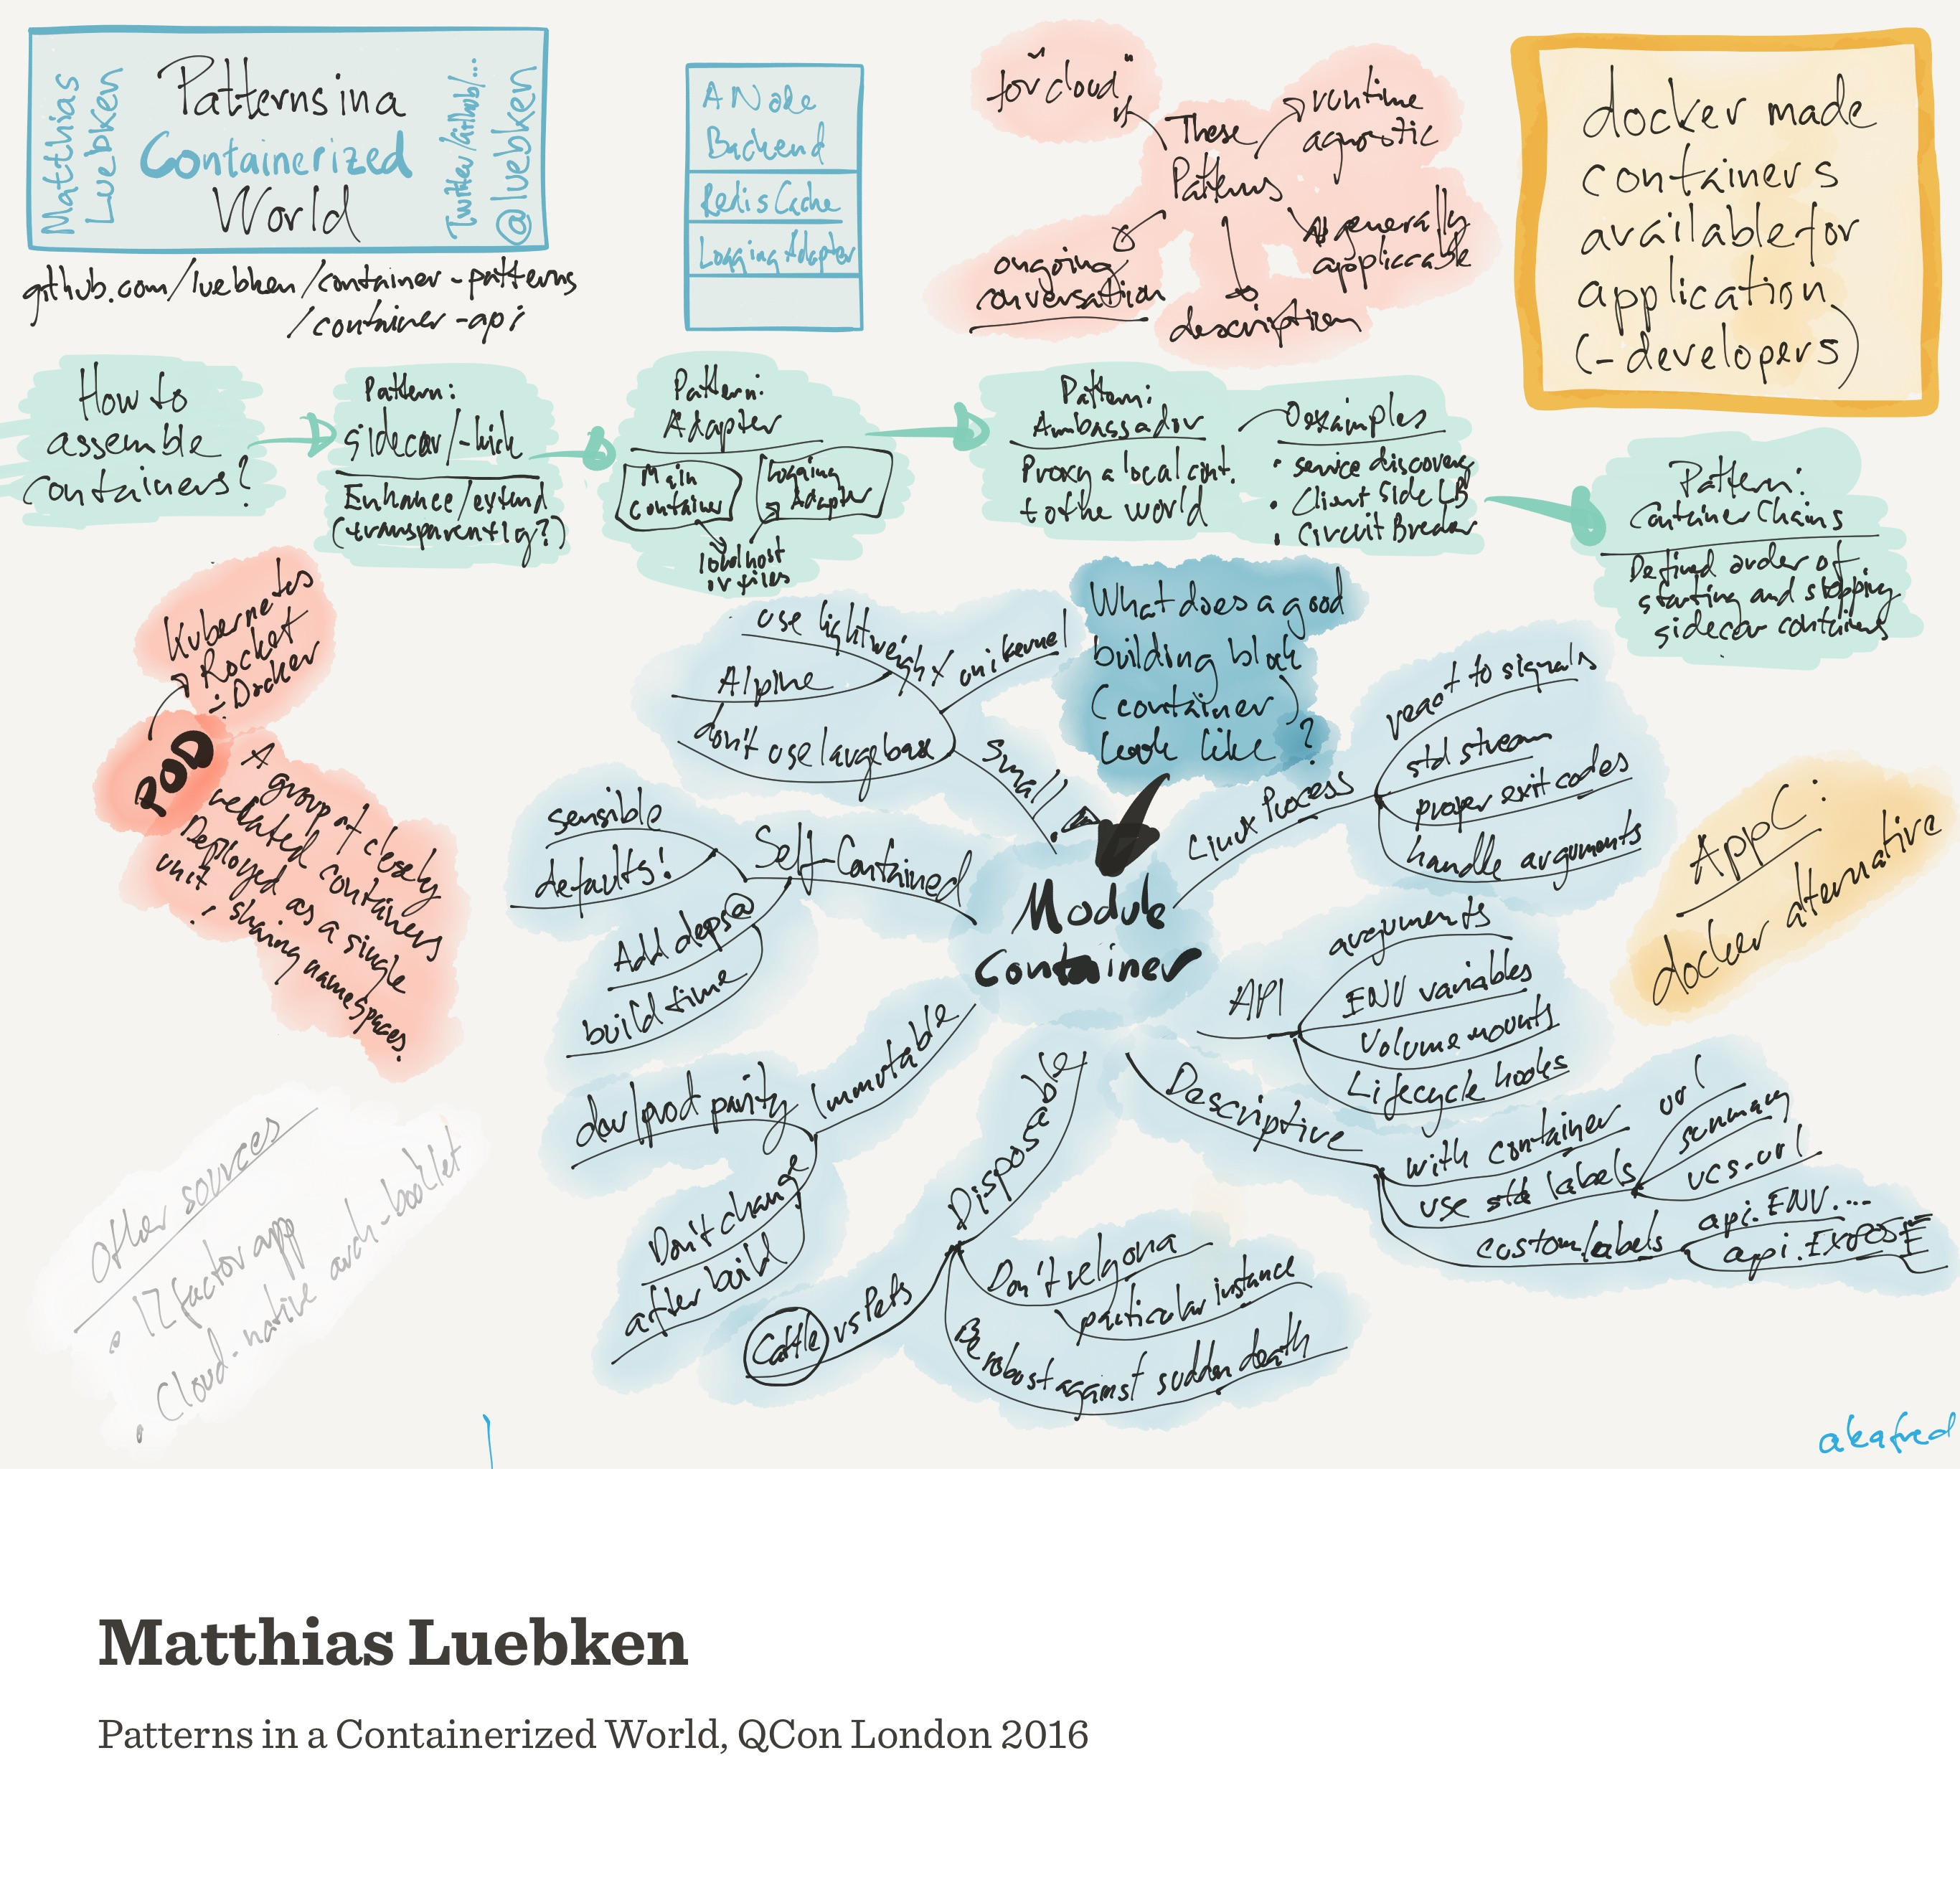 Notes from Patterns in a Containerized World (Matthias Lübken)